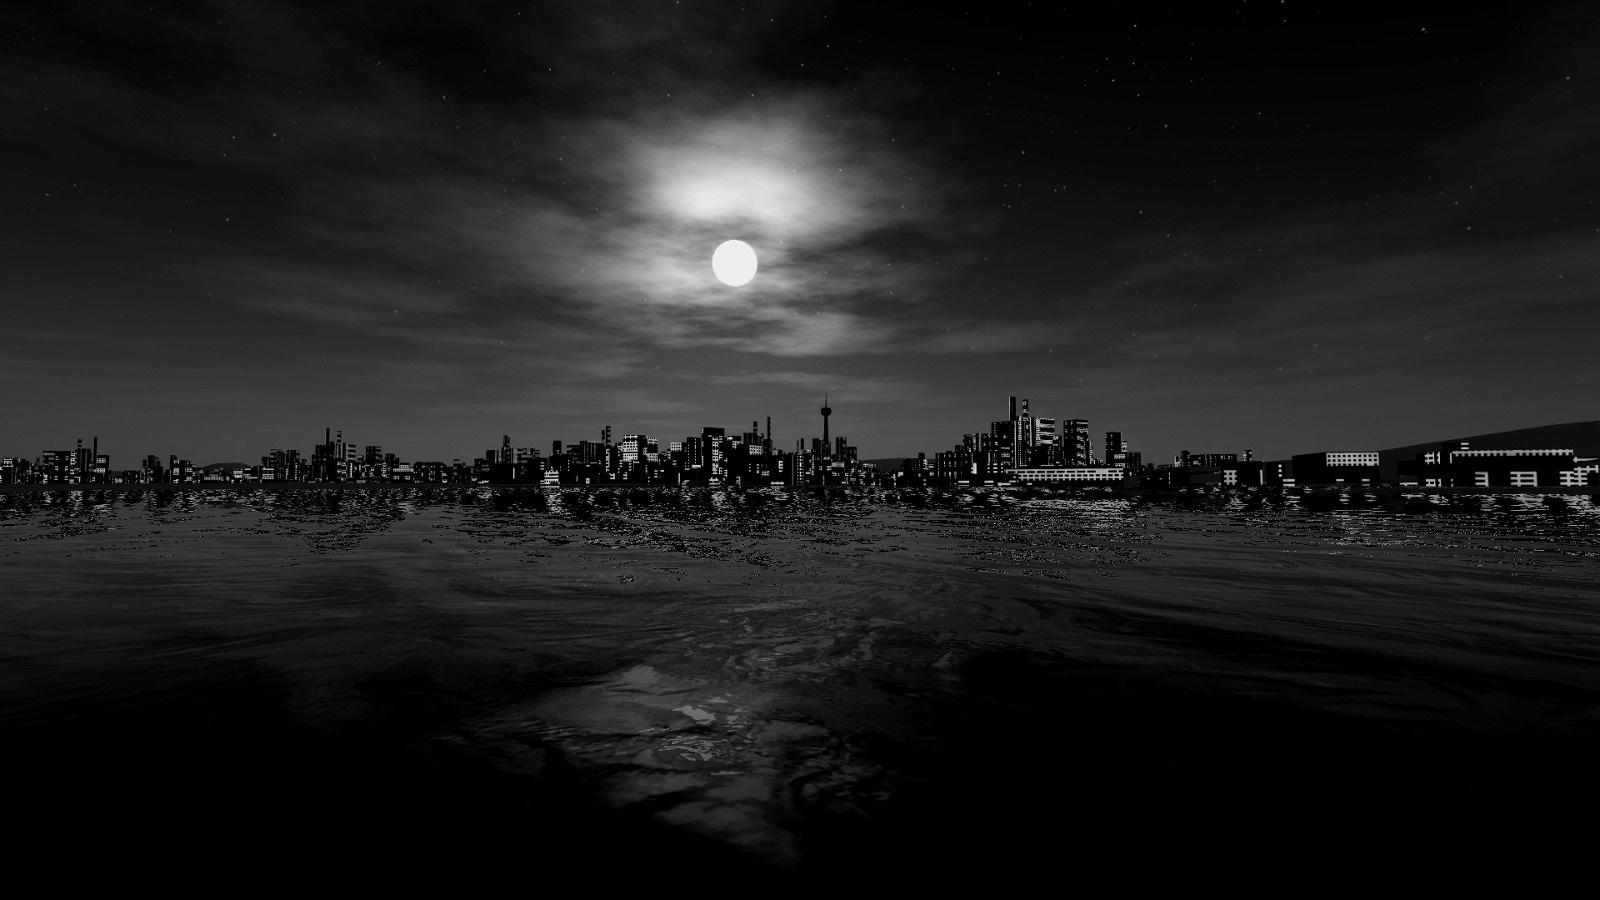 City in Darkness, Full Moon 1579.16 Kb